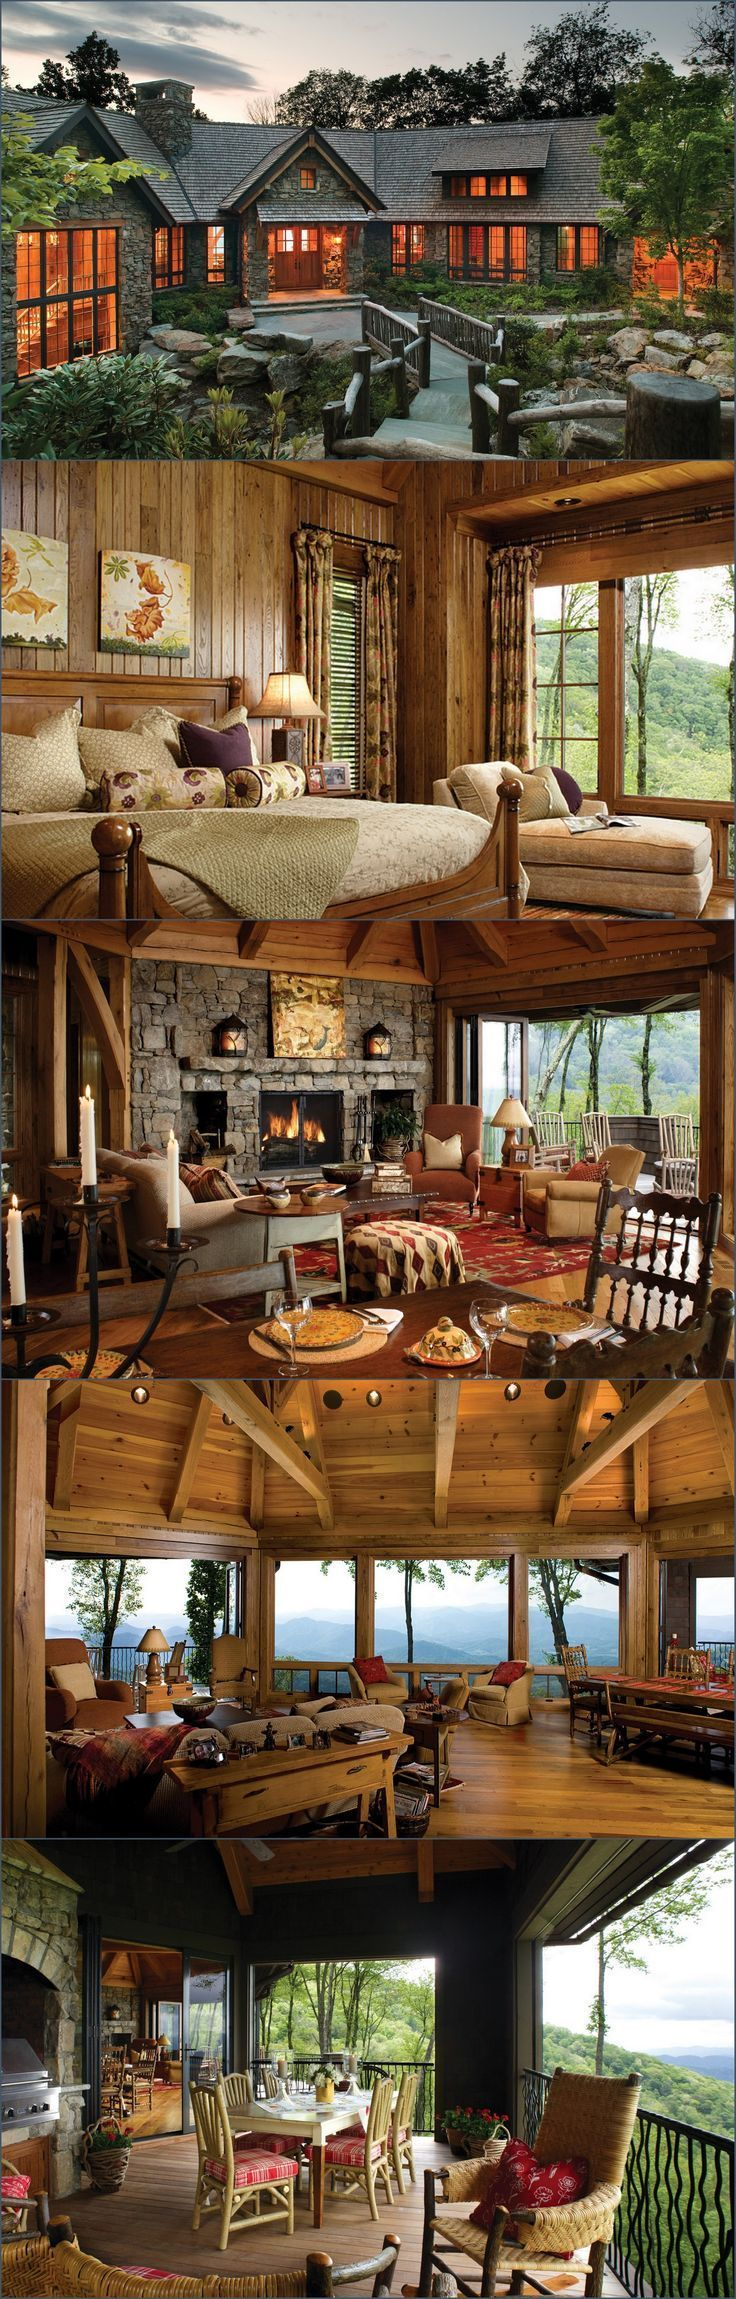 Best 25 Mountain home decorating ideas on Pinterest  Container house design Ranges and